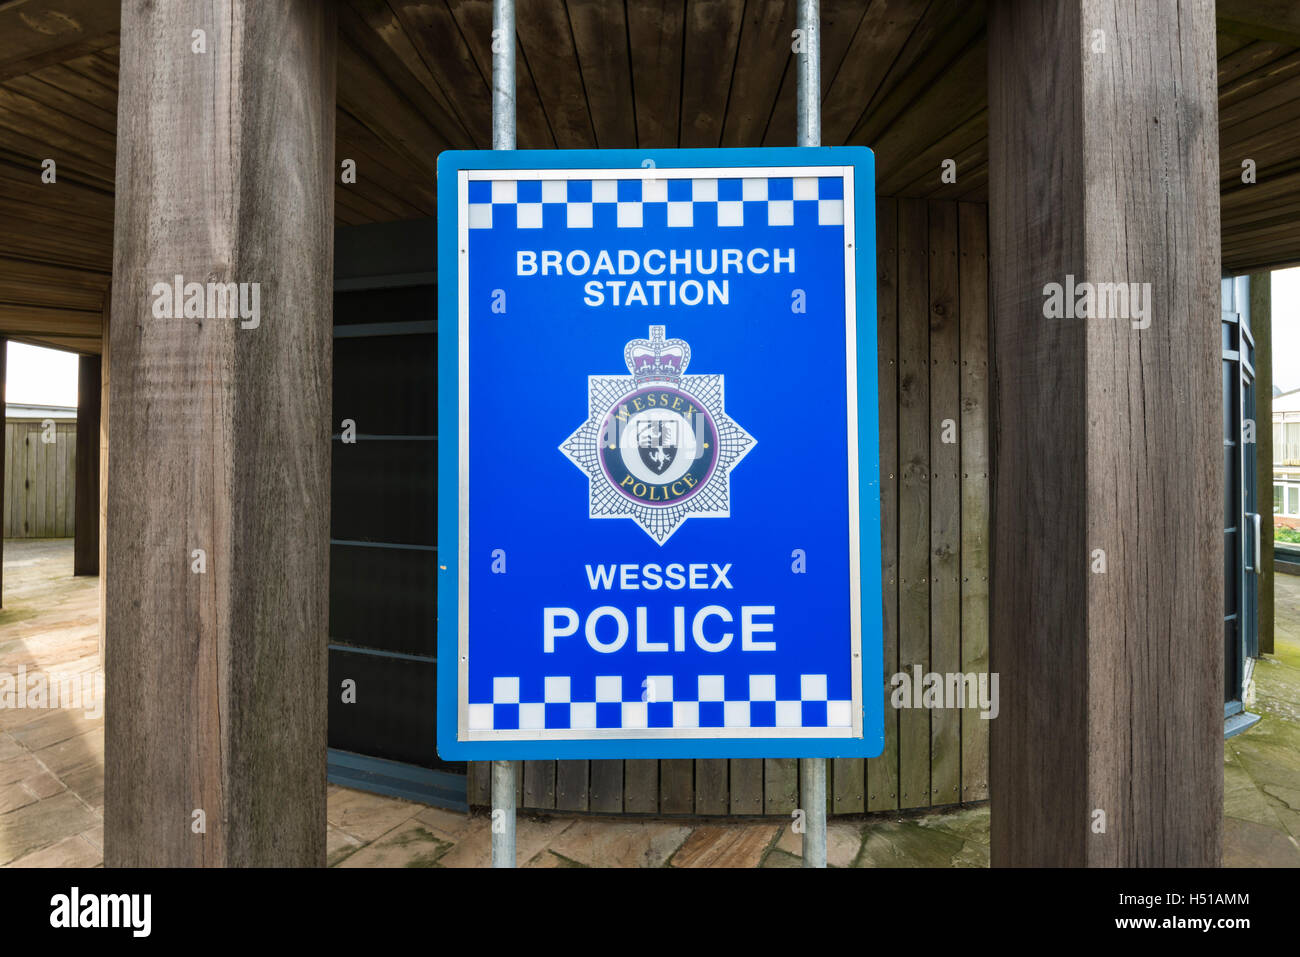 Broadchurch police station sign at West Bay, Dorset in place for filming of series 3 of the hit ITV drama staring - Stock Image